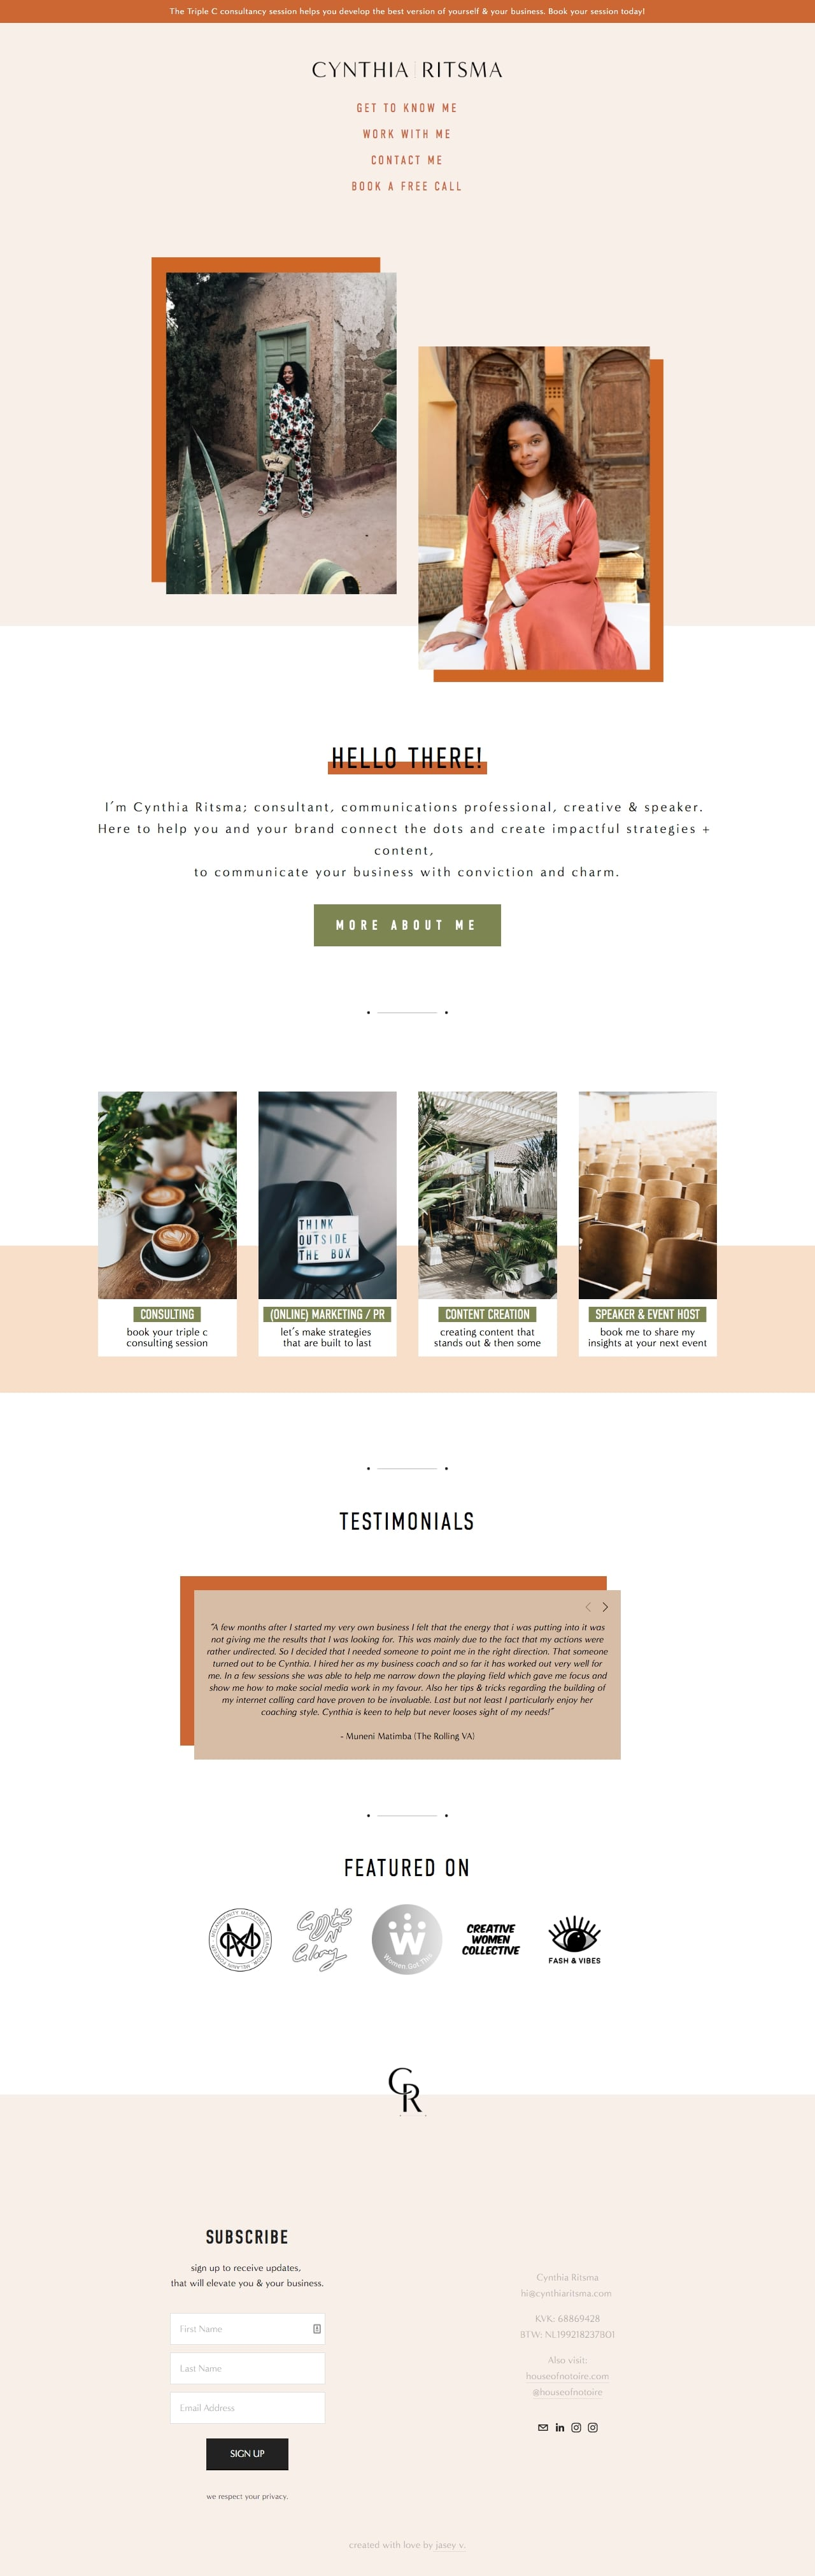 cynthia-ritsma-best-example-of-squarespace-website-for-marketing-businesses.jpg